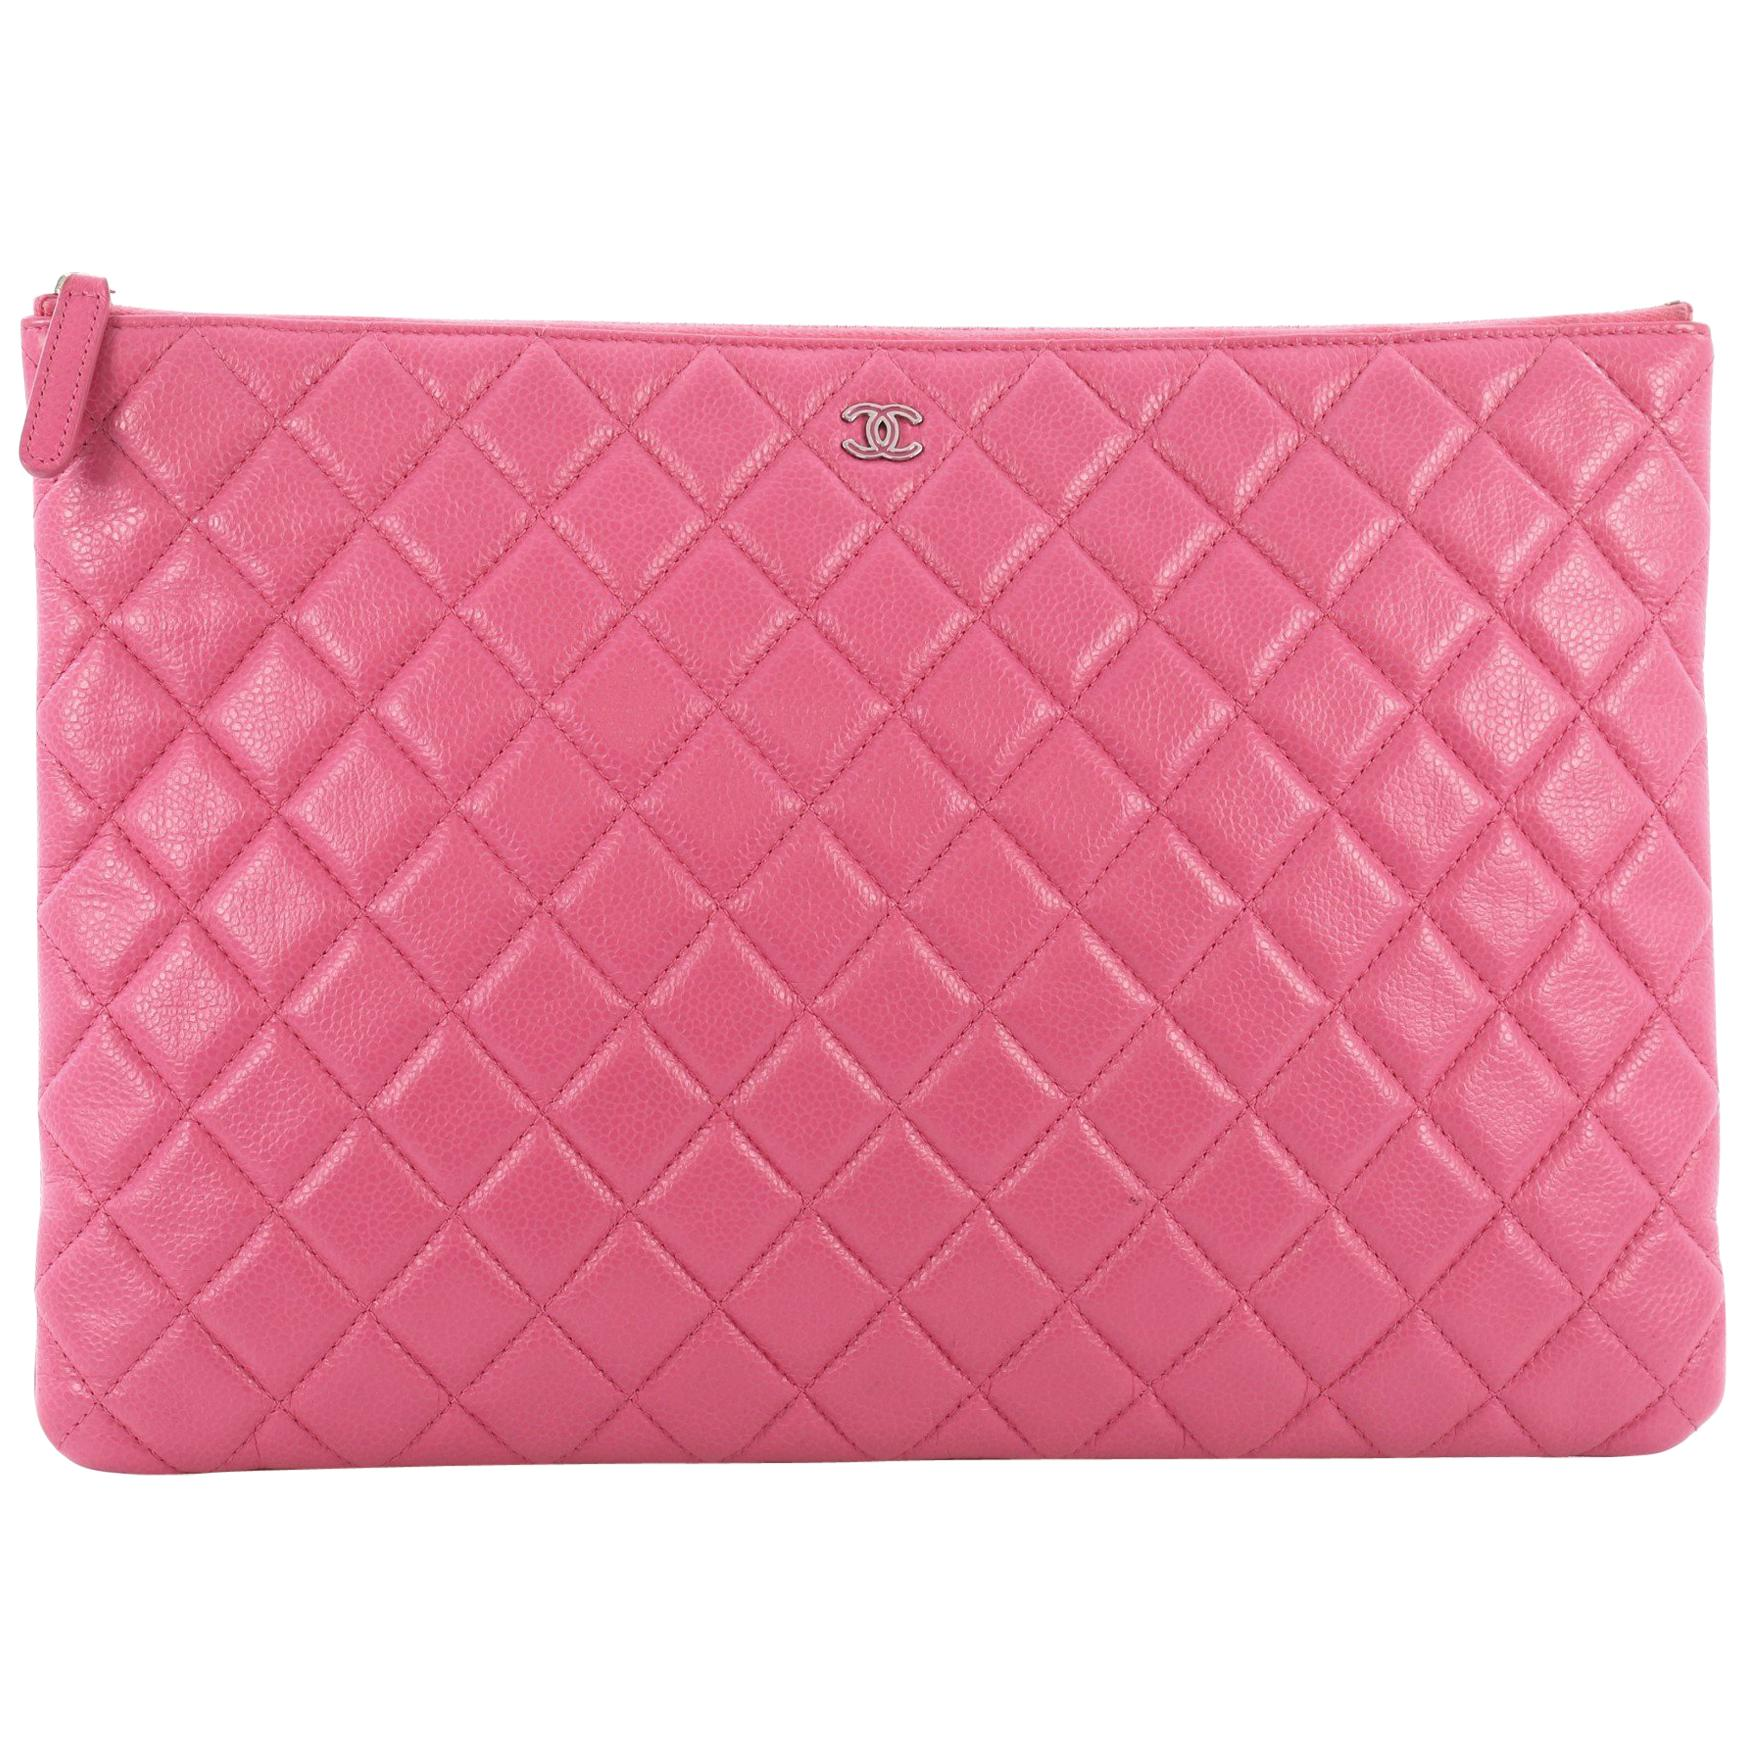 468db04c6d94 Chanel Mademoiselle Vintage O Case Clutch Quilted Sheepskin Mini at 1stdibs